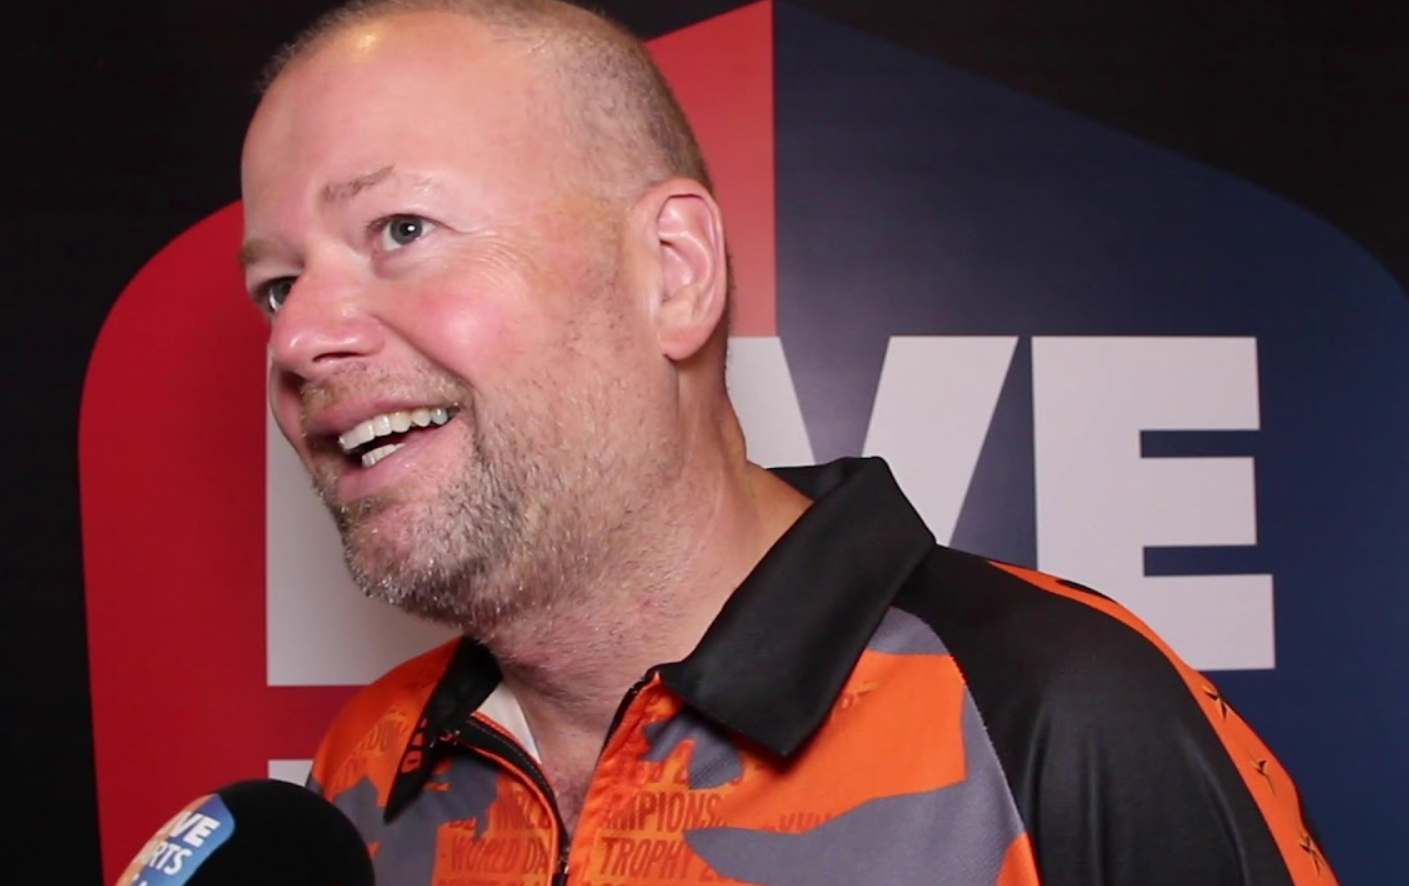 Raymond van Barneveld Speaks About Rumours Of Continuing After This Year